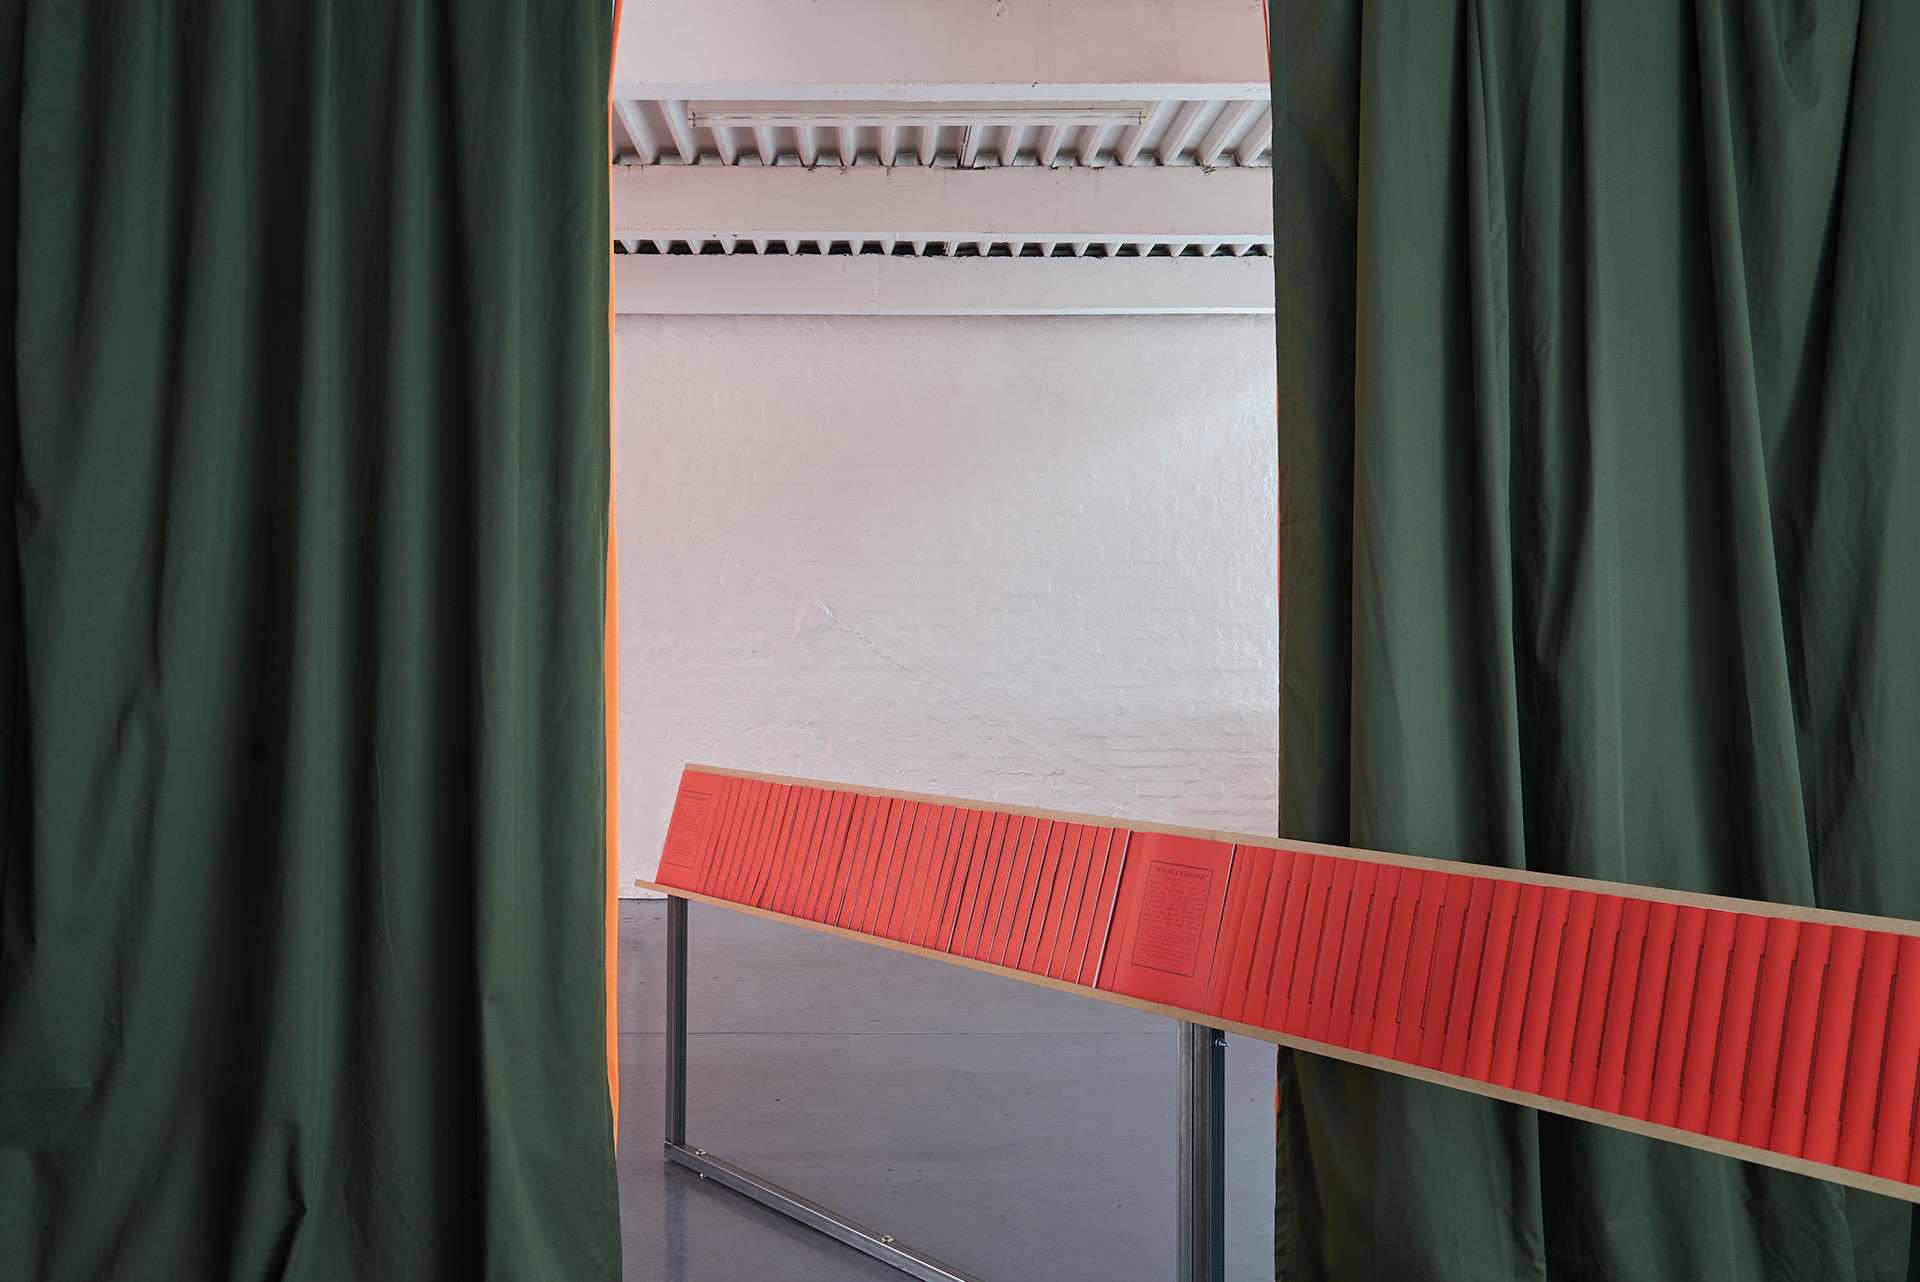 A custom made shelf, filled with red publications, cuts through a pair of heavy green curtains